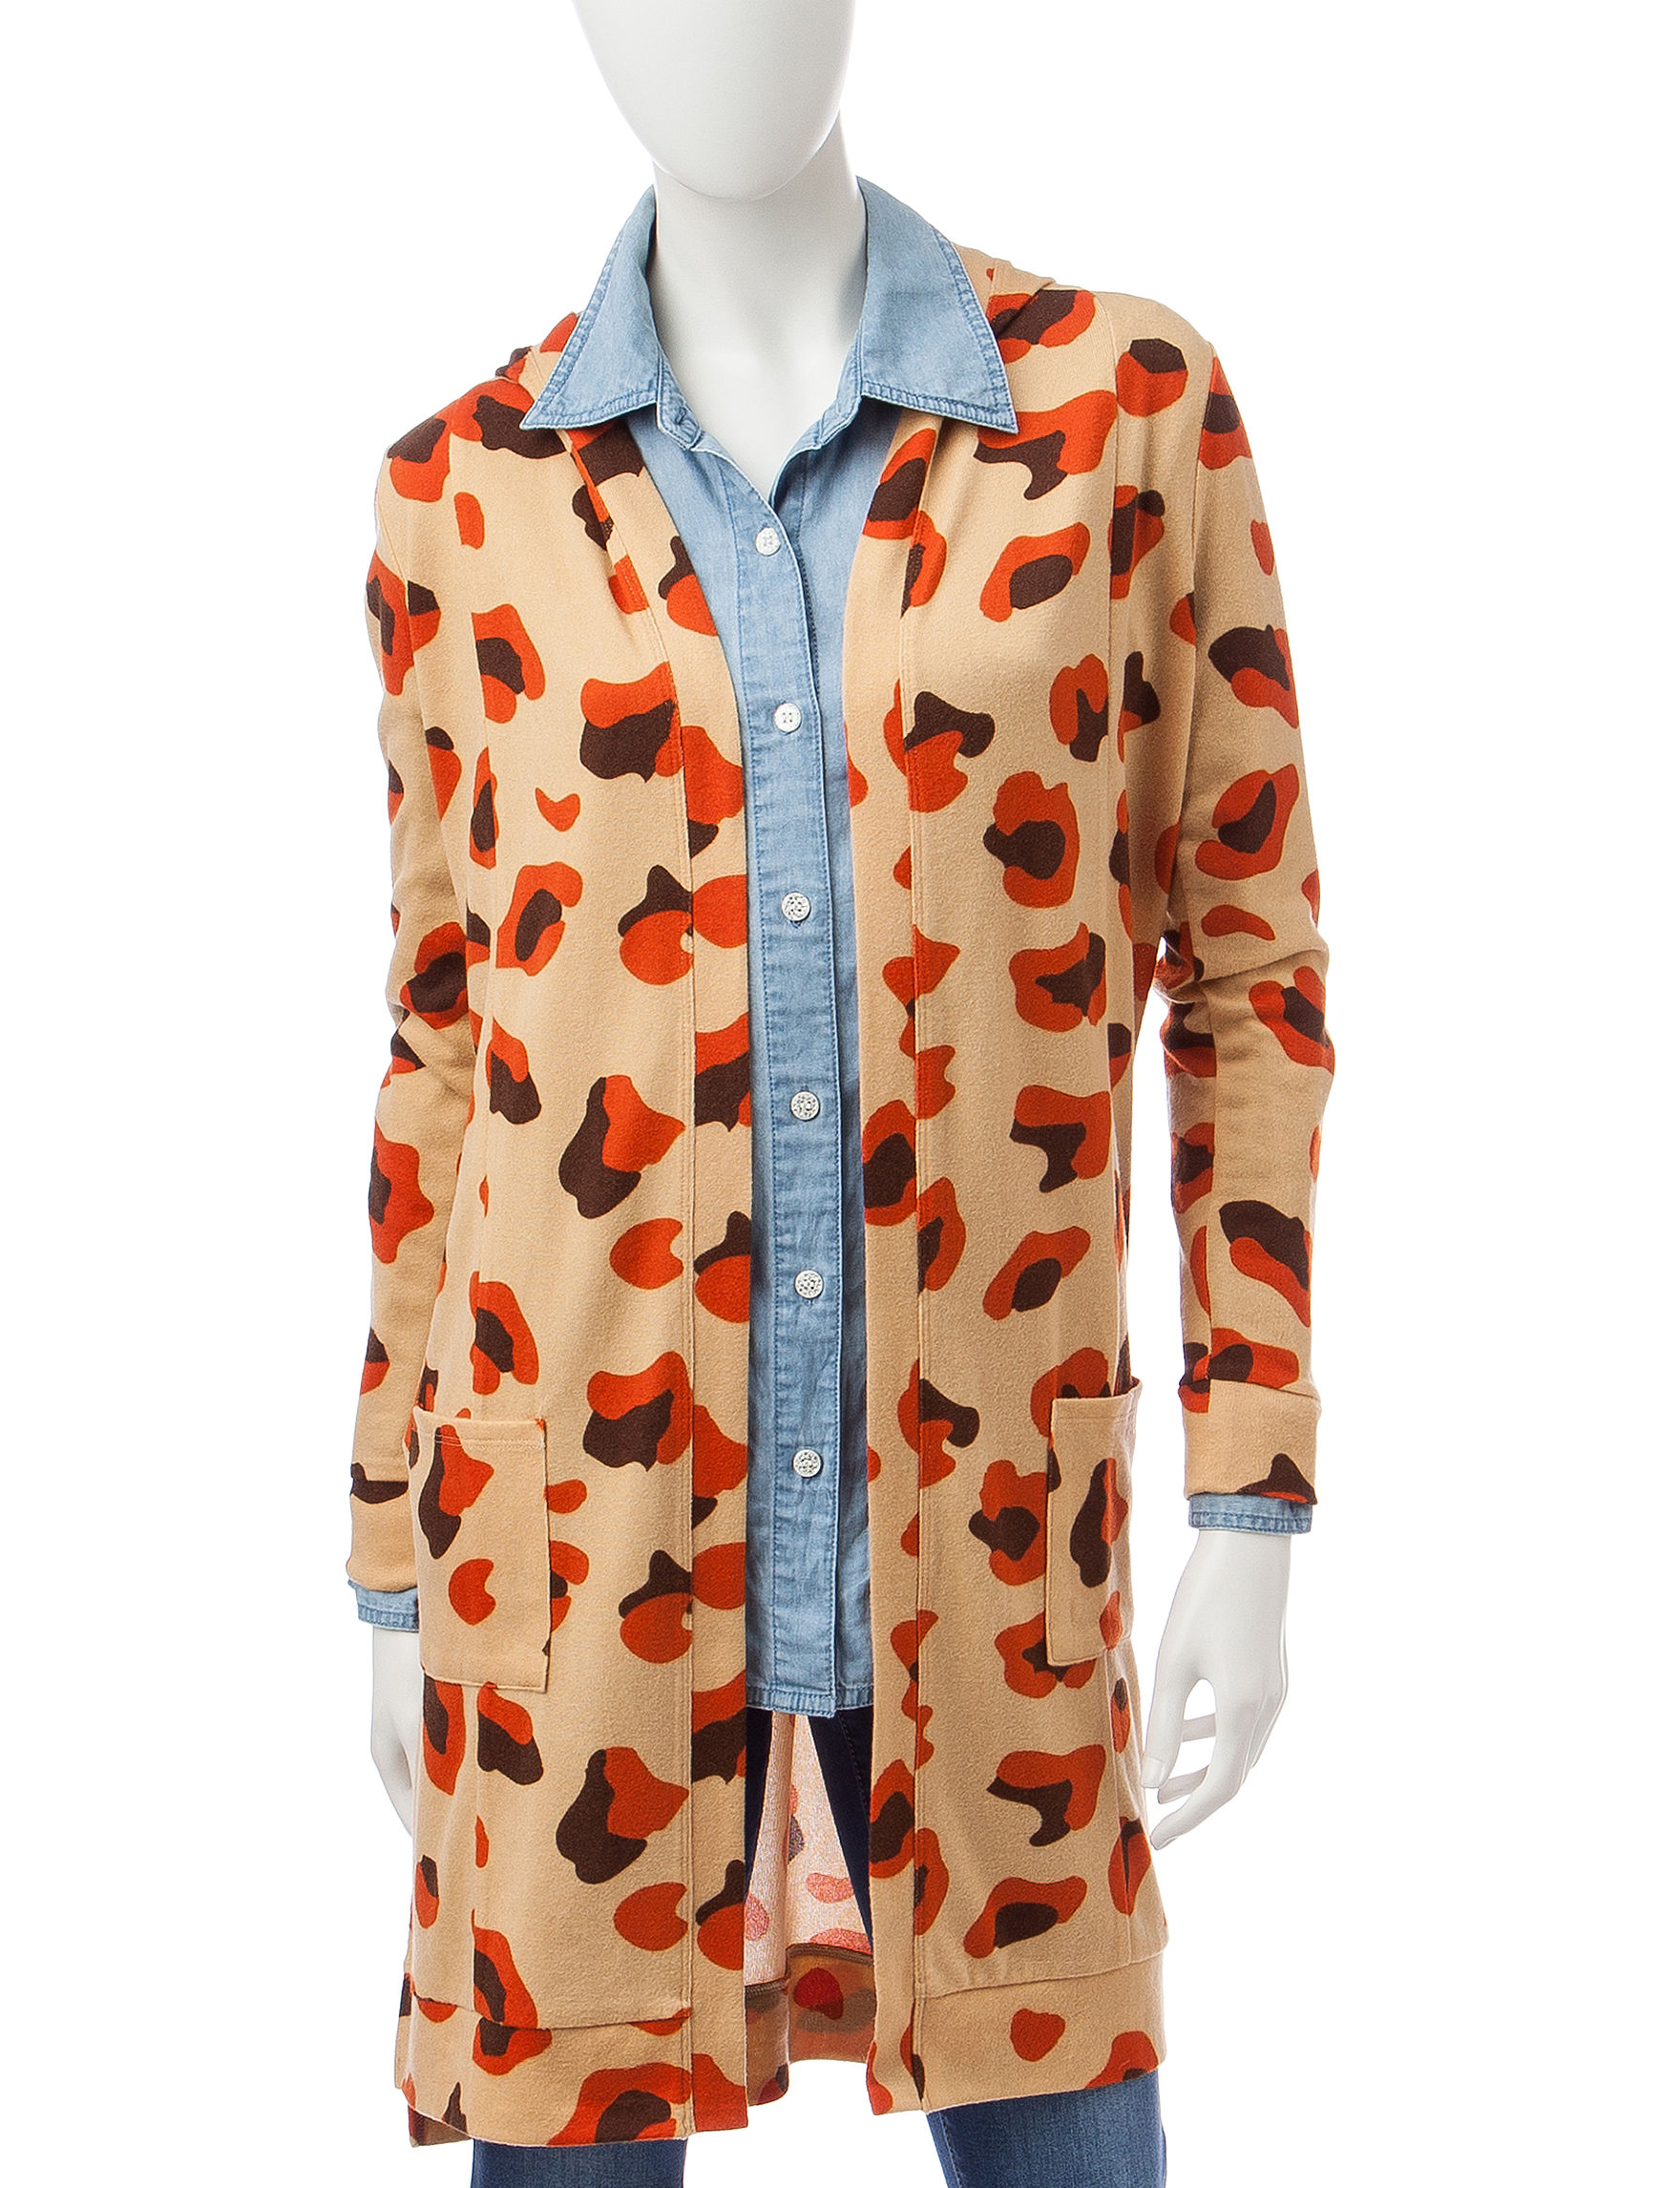 It's Our Time Cheetah Print Hooded Cardigan | Stage Stores